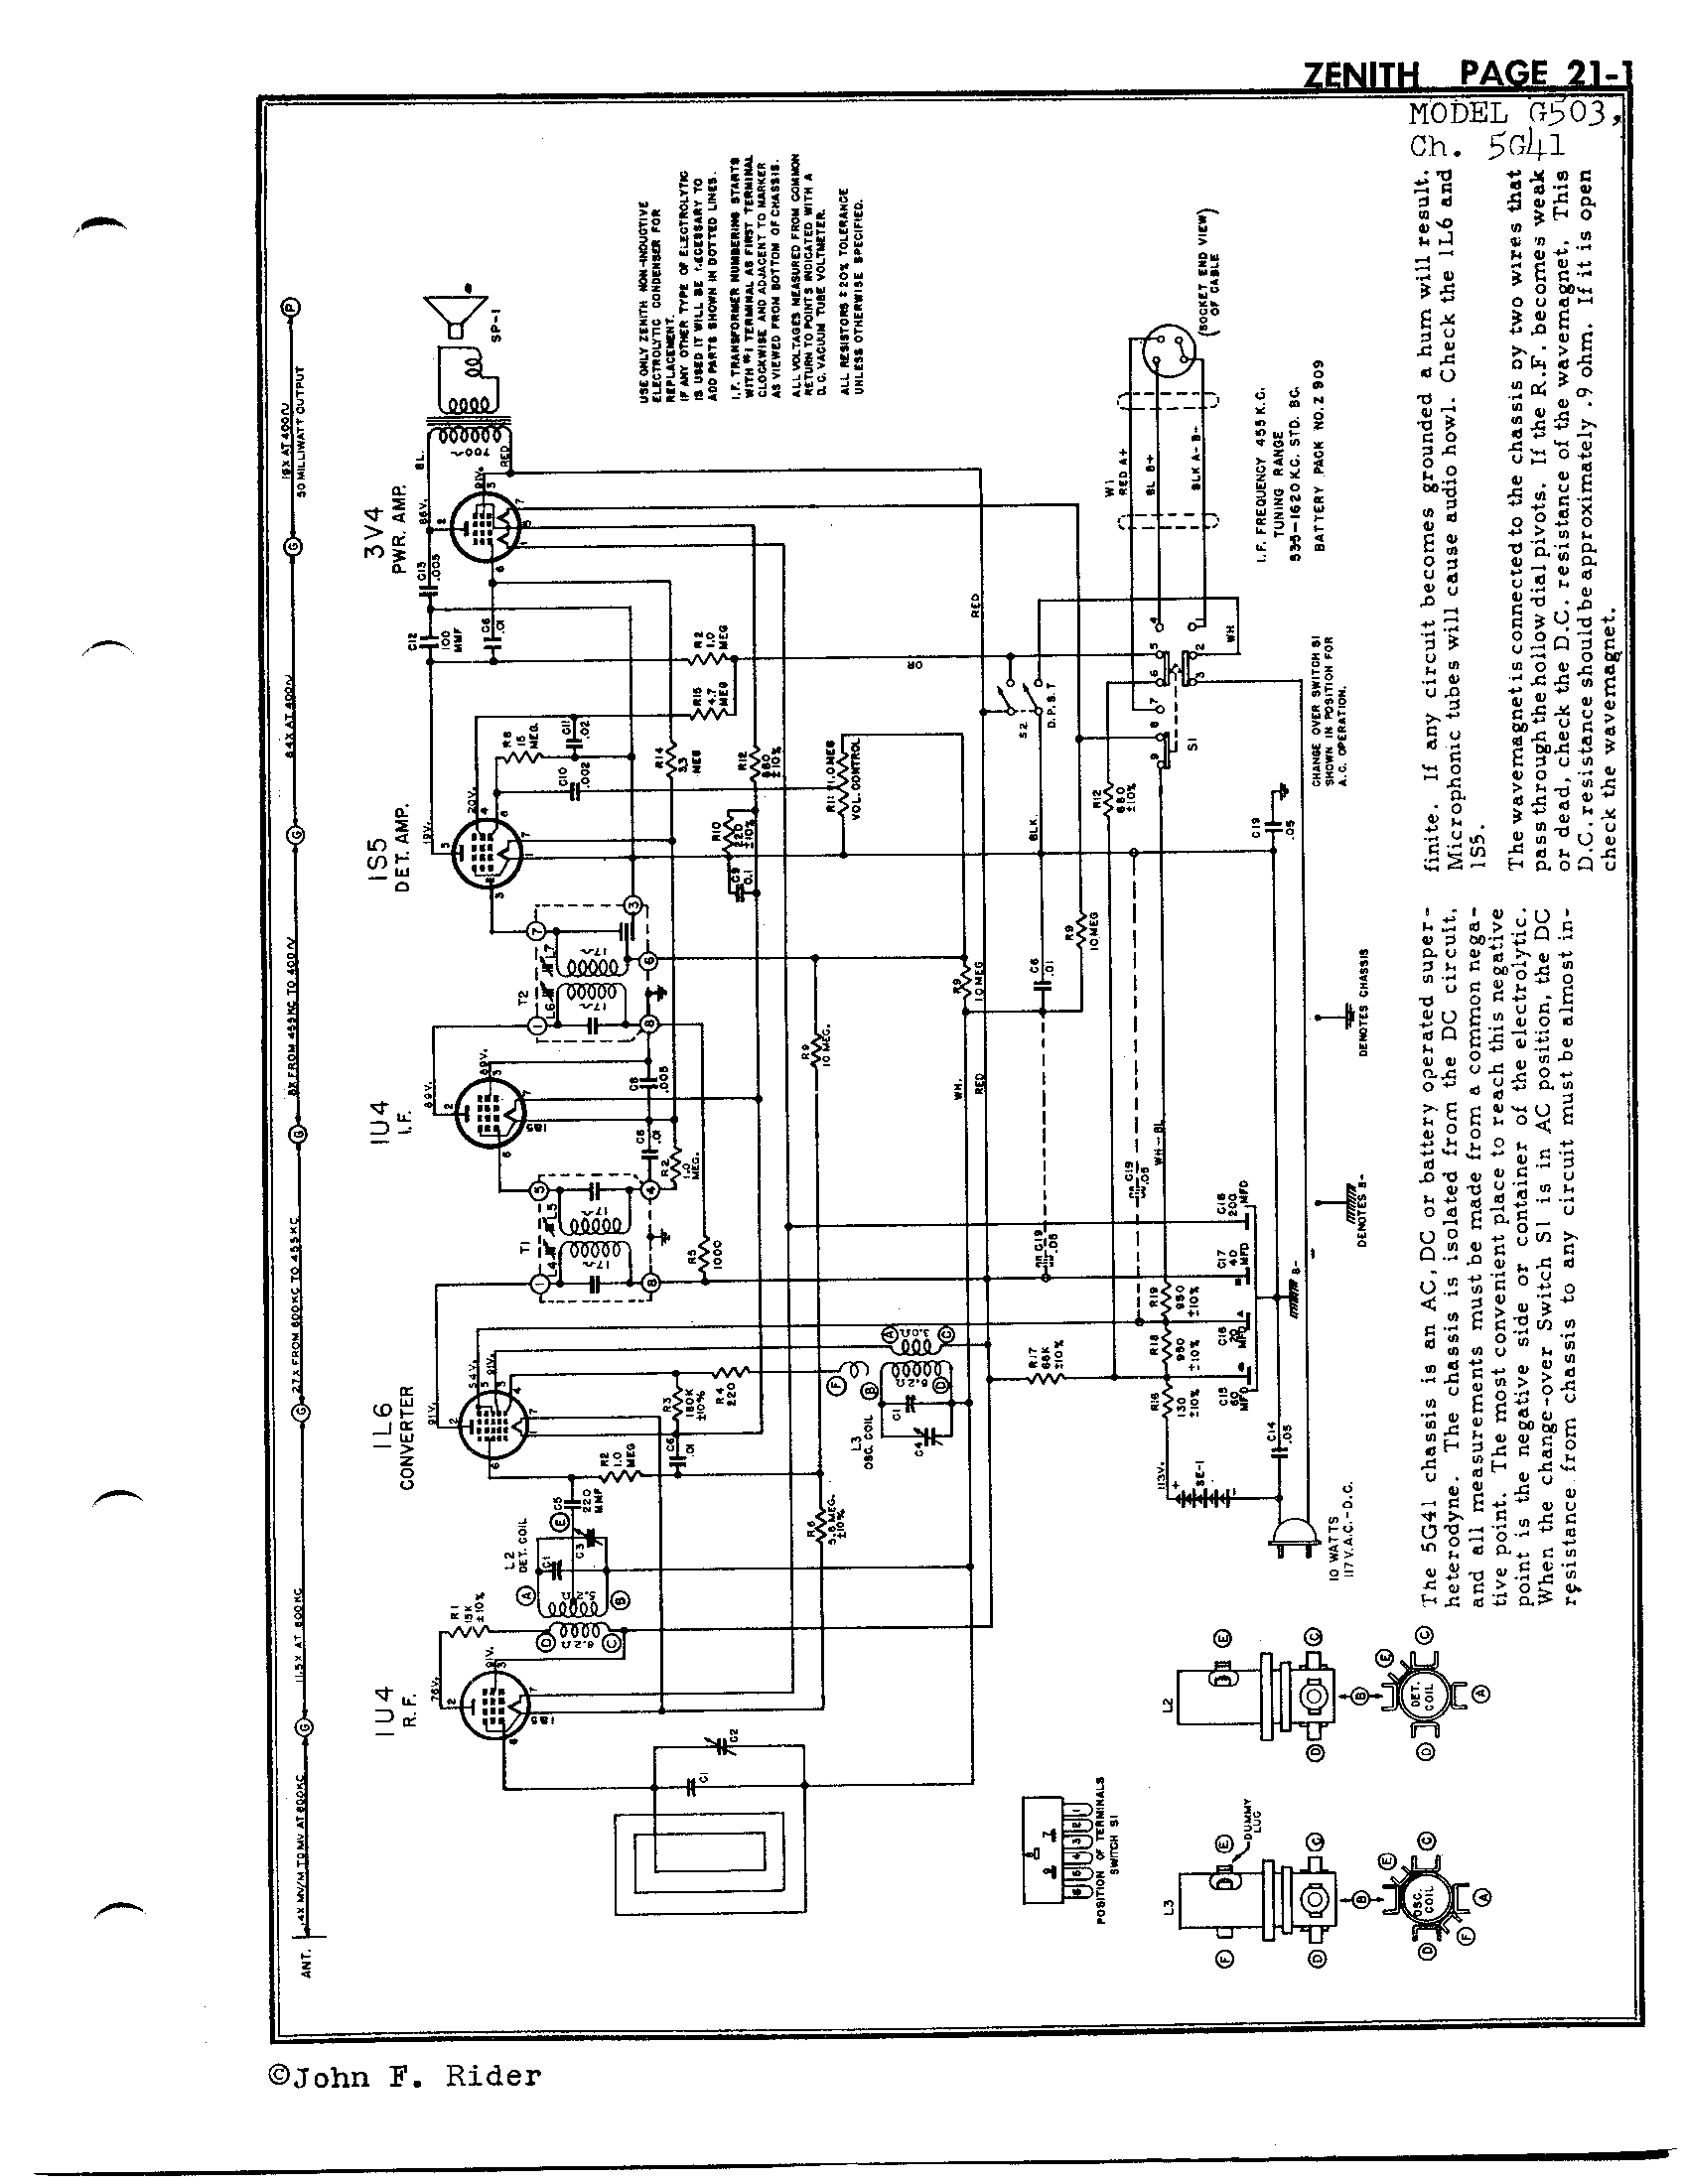 Zenith Radio Corp G503 Antique Electronic Supply. Page 1 5952 Kb Rider Manual Volume 21. Wiring. Zenith Tube Radio Schematics N73 1 At Scoala.co